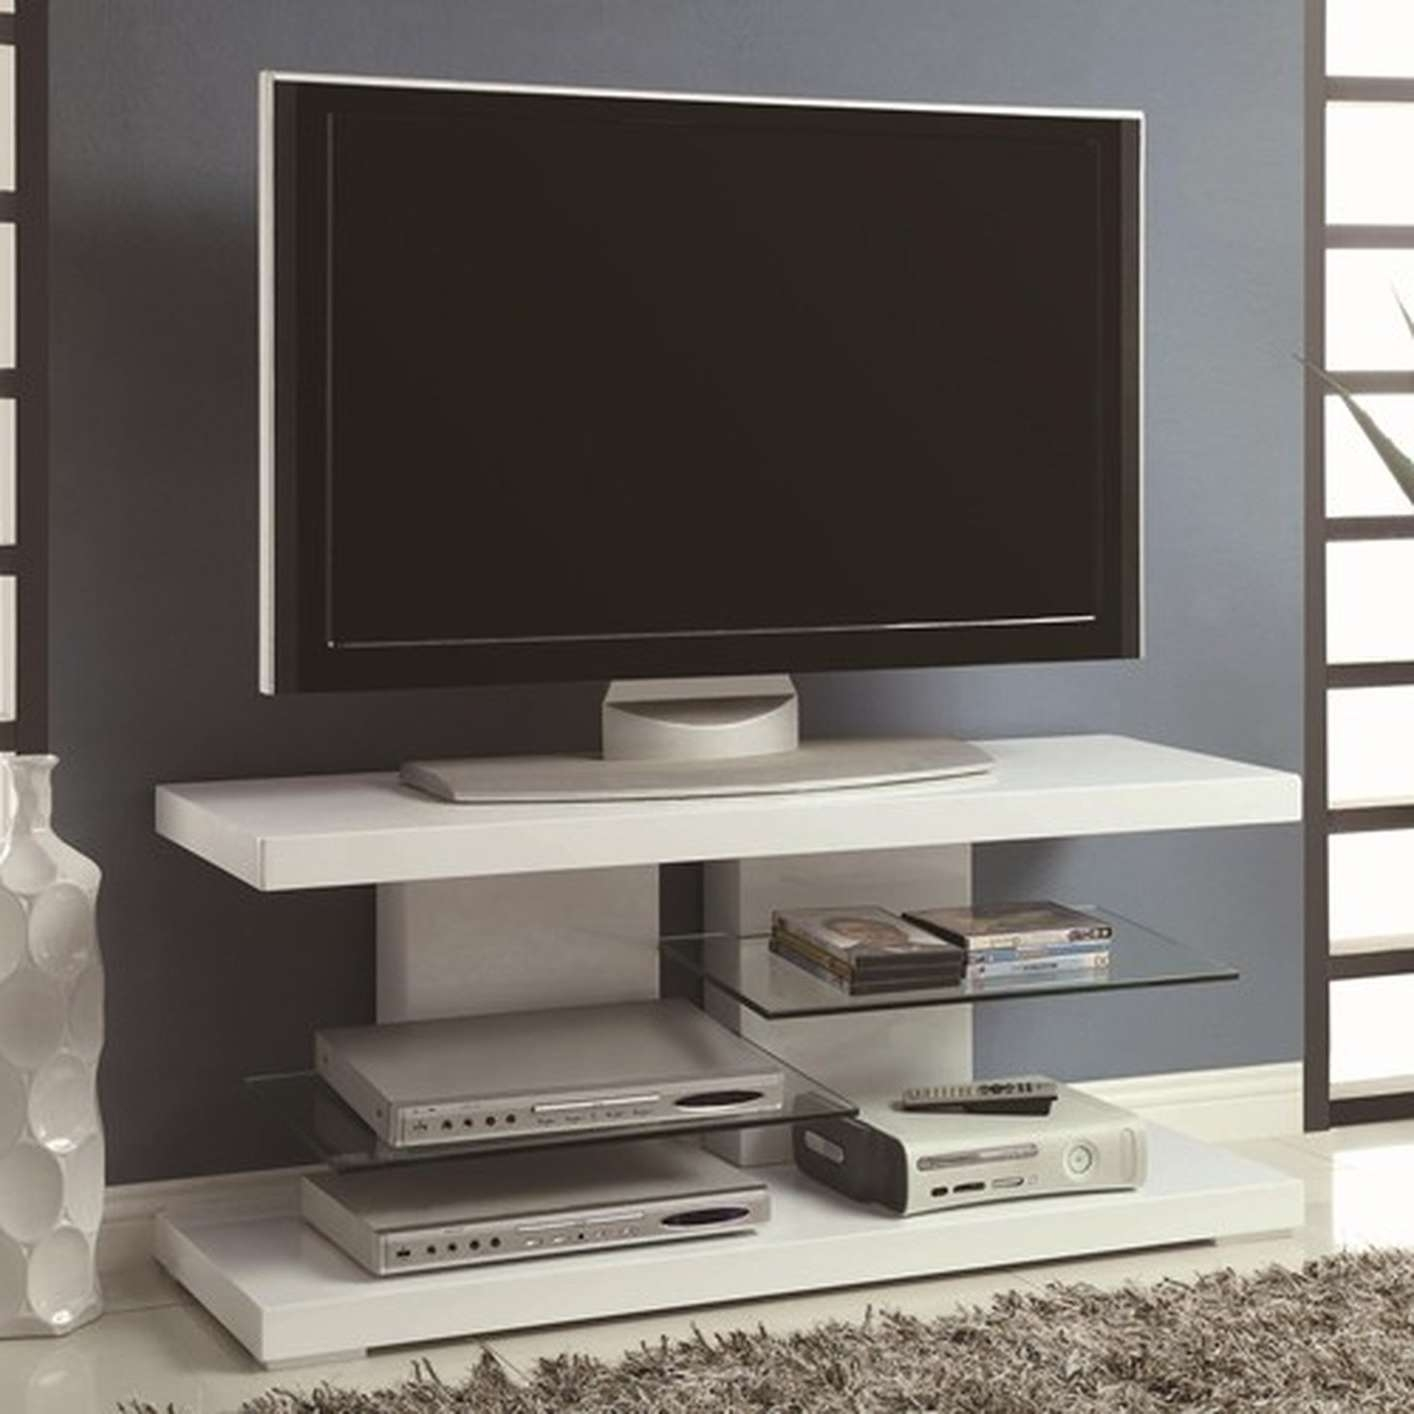 White Glass Tv Stand – Steal A Sofa Furniture Outlet Los Angeles Ca With Glossy White Tv Stands (View 12 of 15)